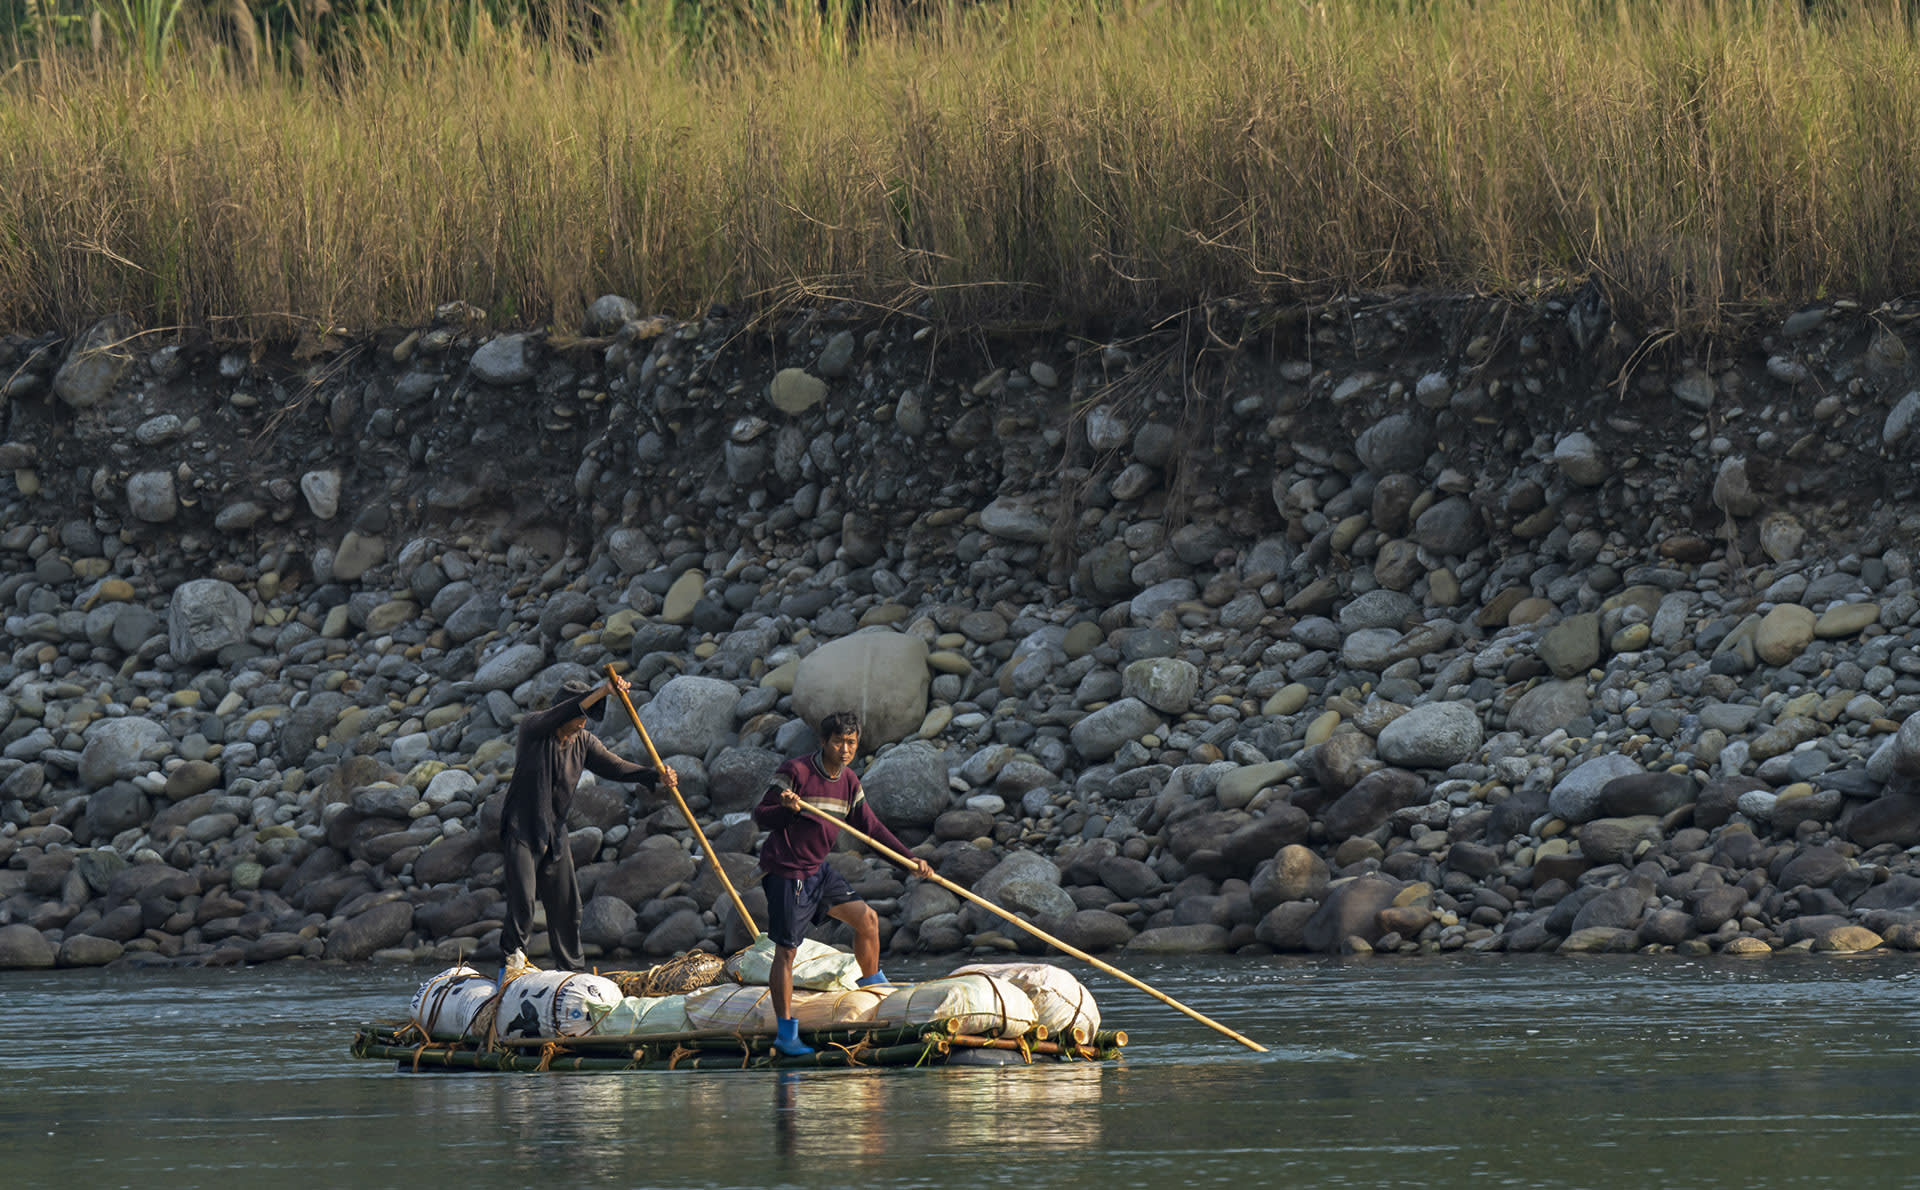 "In the absence of any infrastructure, locals from Vijoynagar either walk or use the river to transport goods to Miao. Sometimes, they build rafts from bamboo that grows abundantly in the area and move along the boulder-strewn riverbank until they arrive at their destination.  In 2013, the government proposed plans for a two-lane road connecting Vijoynagar with Miao, but the project did not progress, ""as ecologists flagged the road as a bad idea for Namdapha, which is a meeting point of Himalayan, Indo-Burmese, and Indo-Chinese flora and fauna,"" according to a report by journalist Rahul Karmakar in the The Hindu."